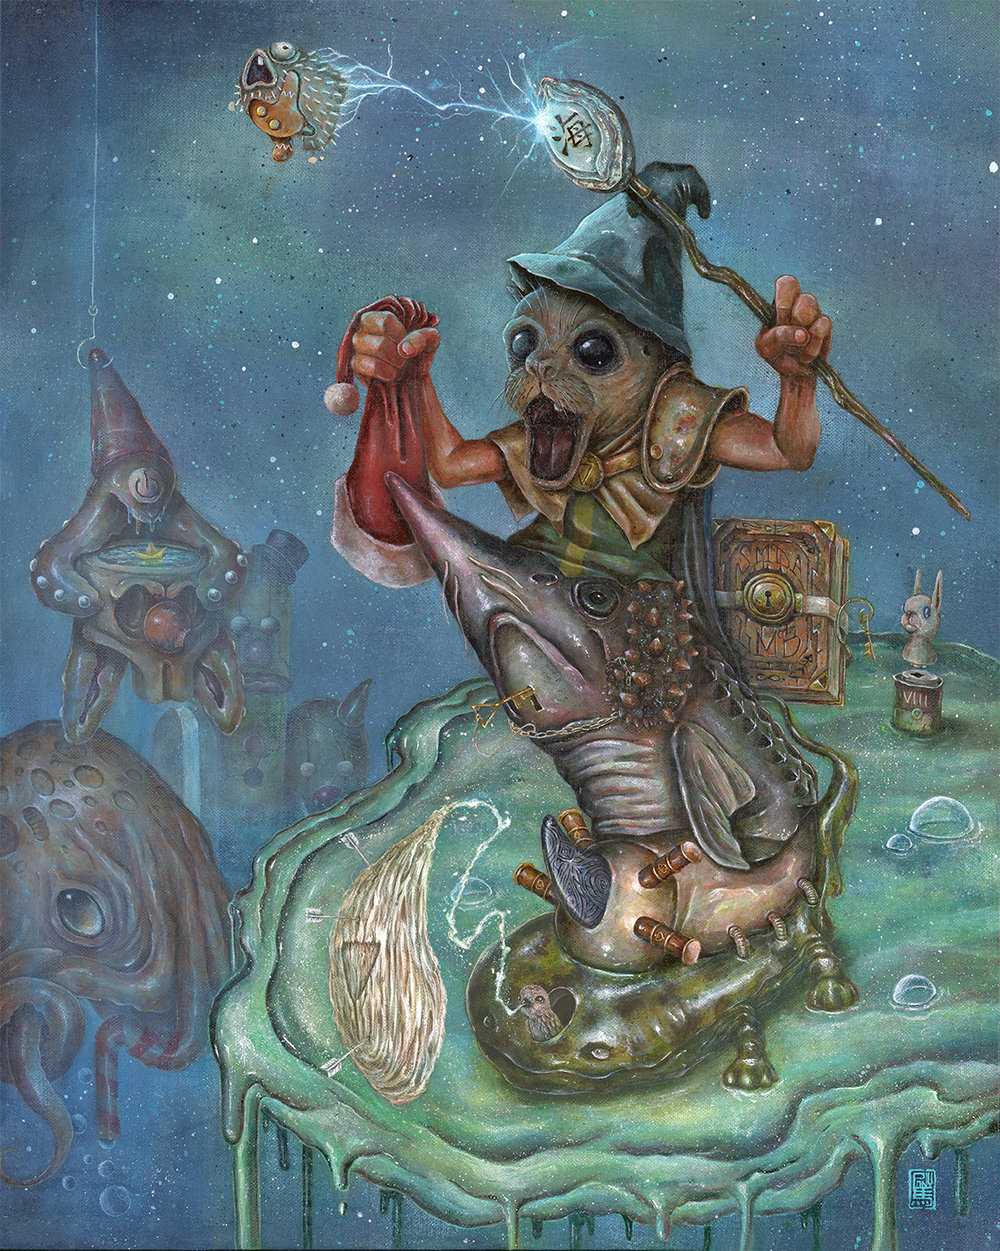 Sea Bazhen, the wizard